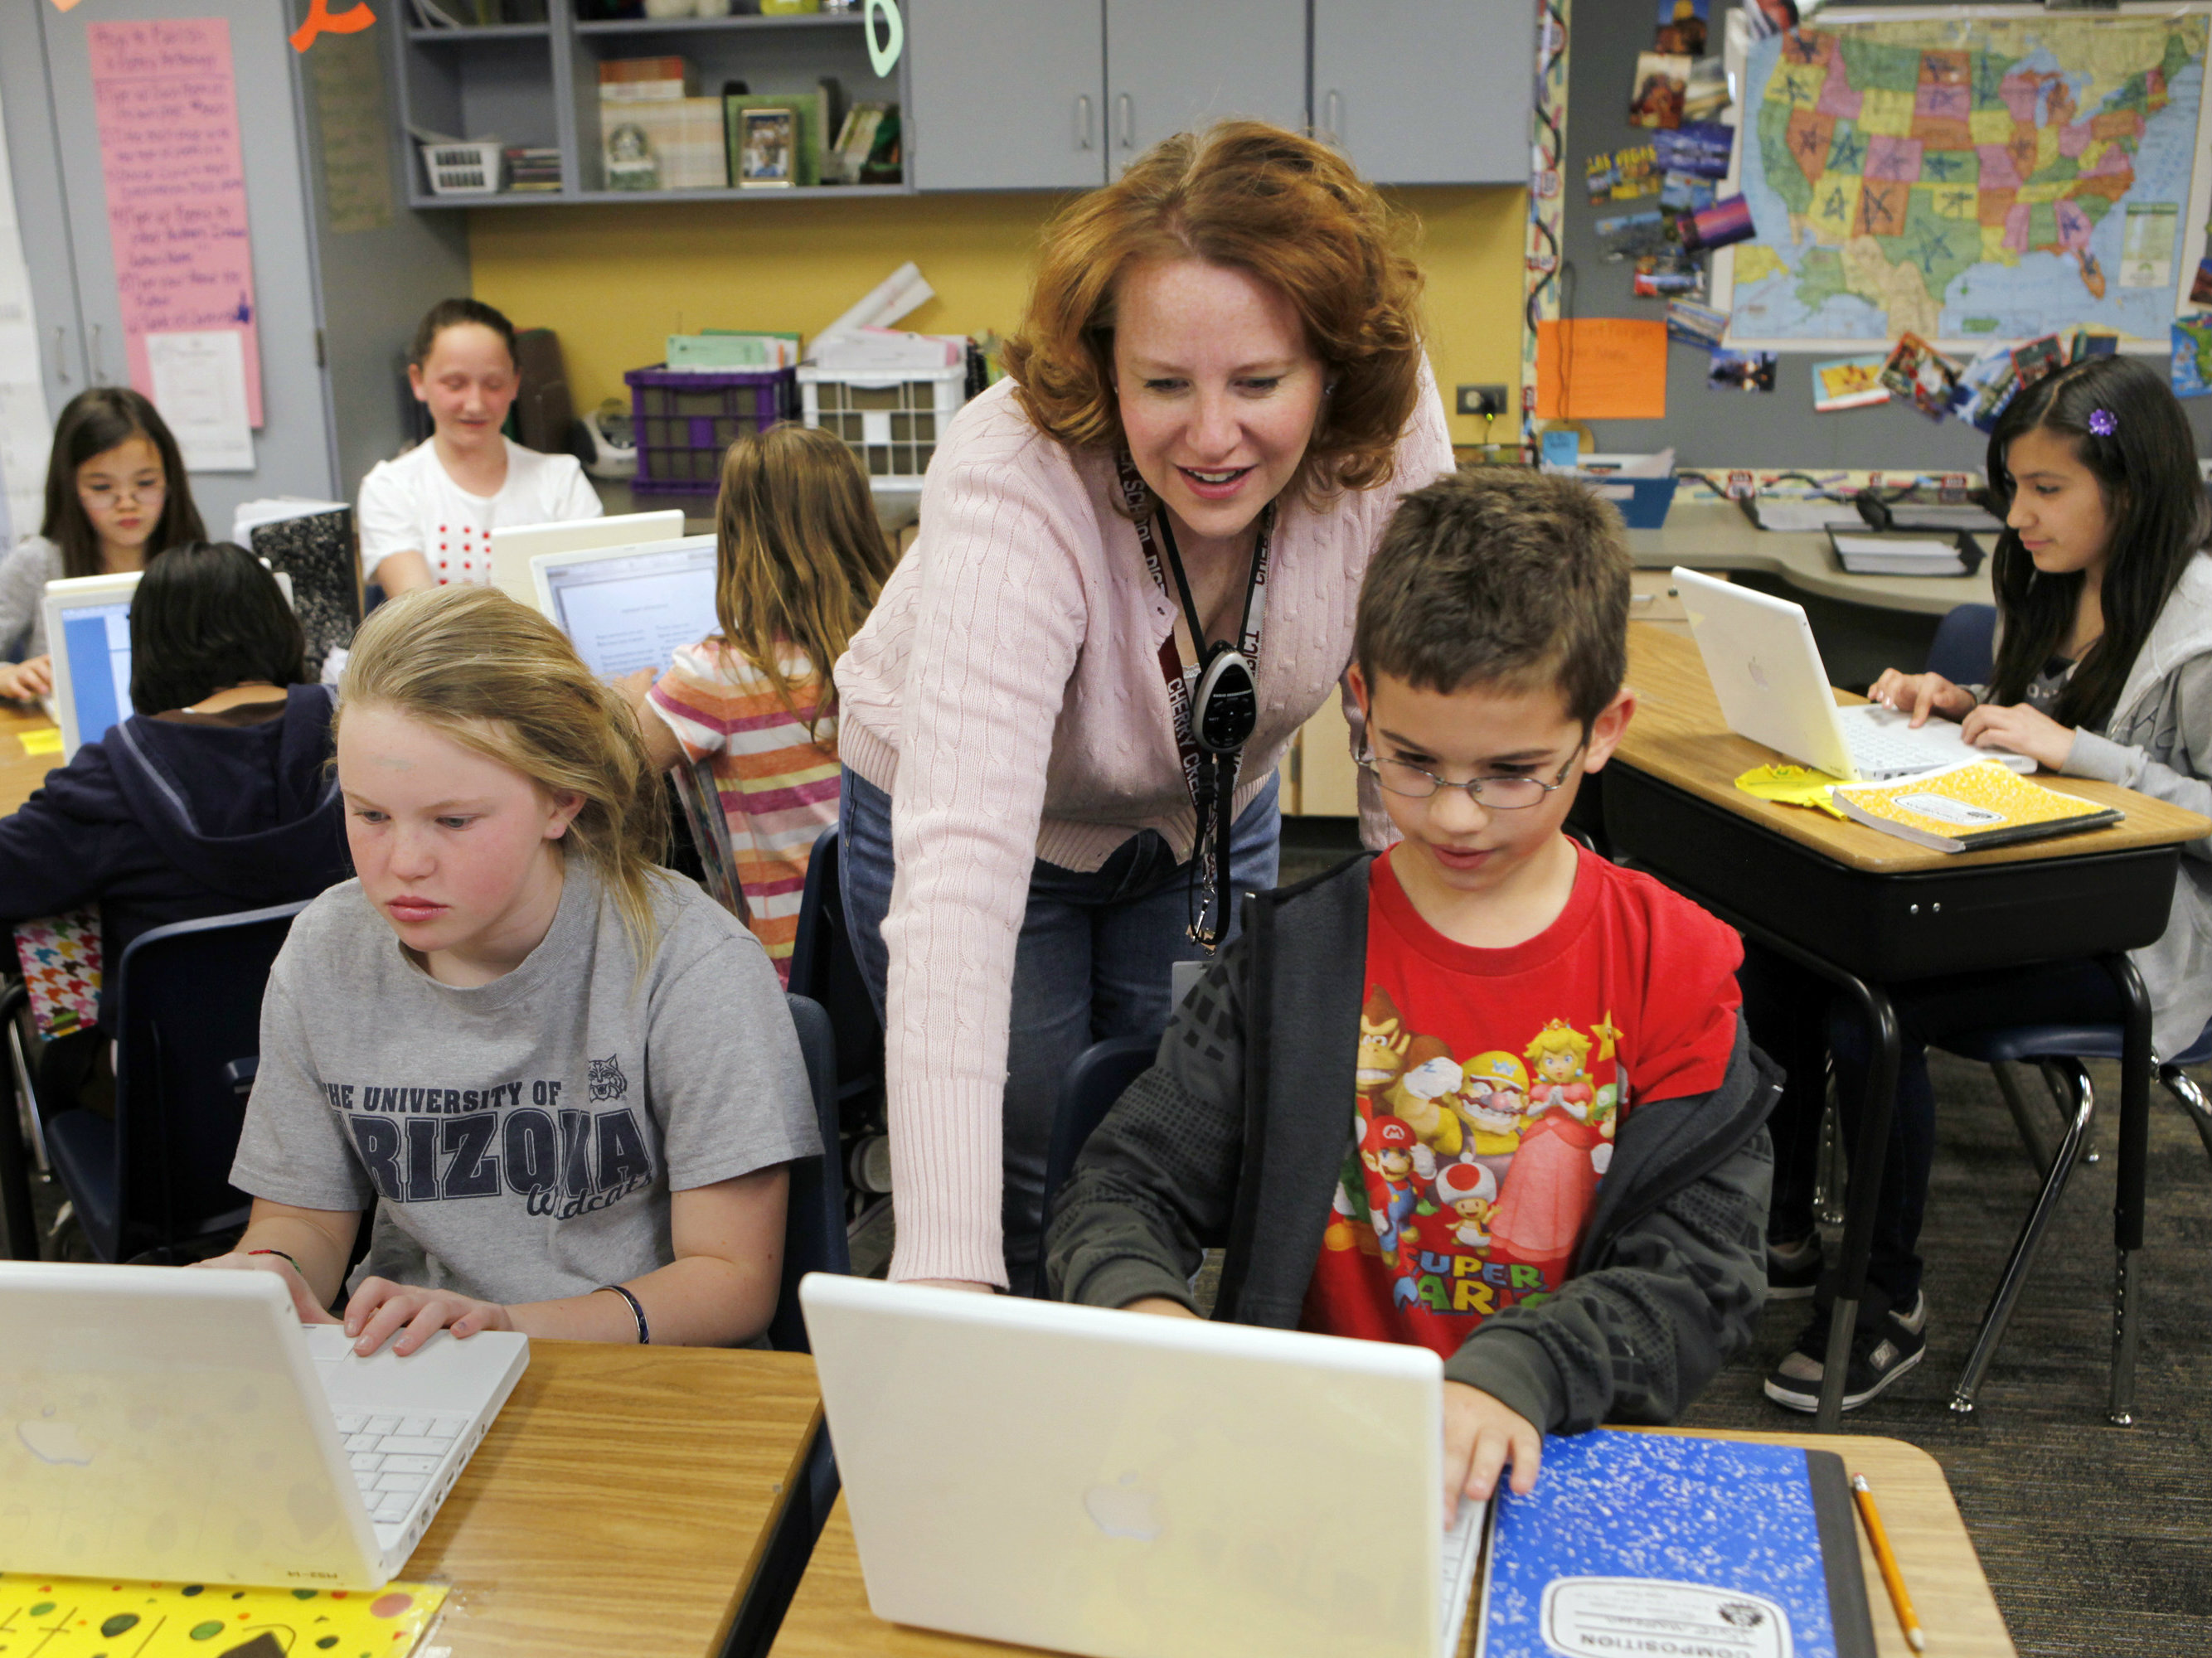 <p>In this April 22, 2011 photo, High Plains Elementary School teacher Jennifer Williford, center, works with Colette Jackson, 11, and Skyler Matteson, 10, right, on a computer project in her fifth grade class at the school in Englewood, Colo.</p>